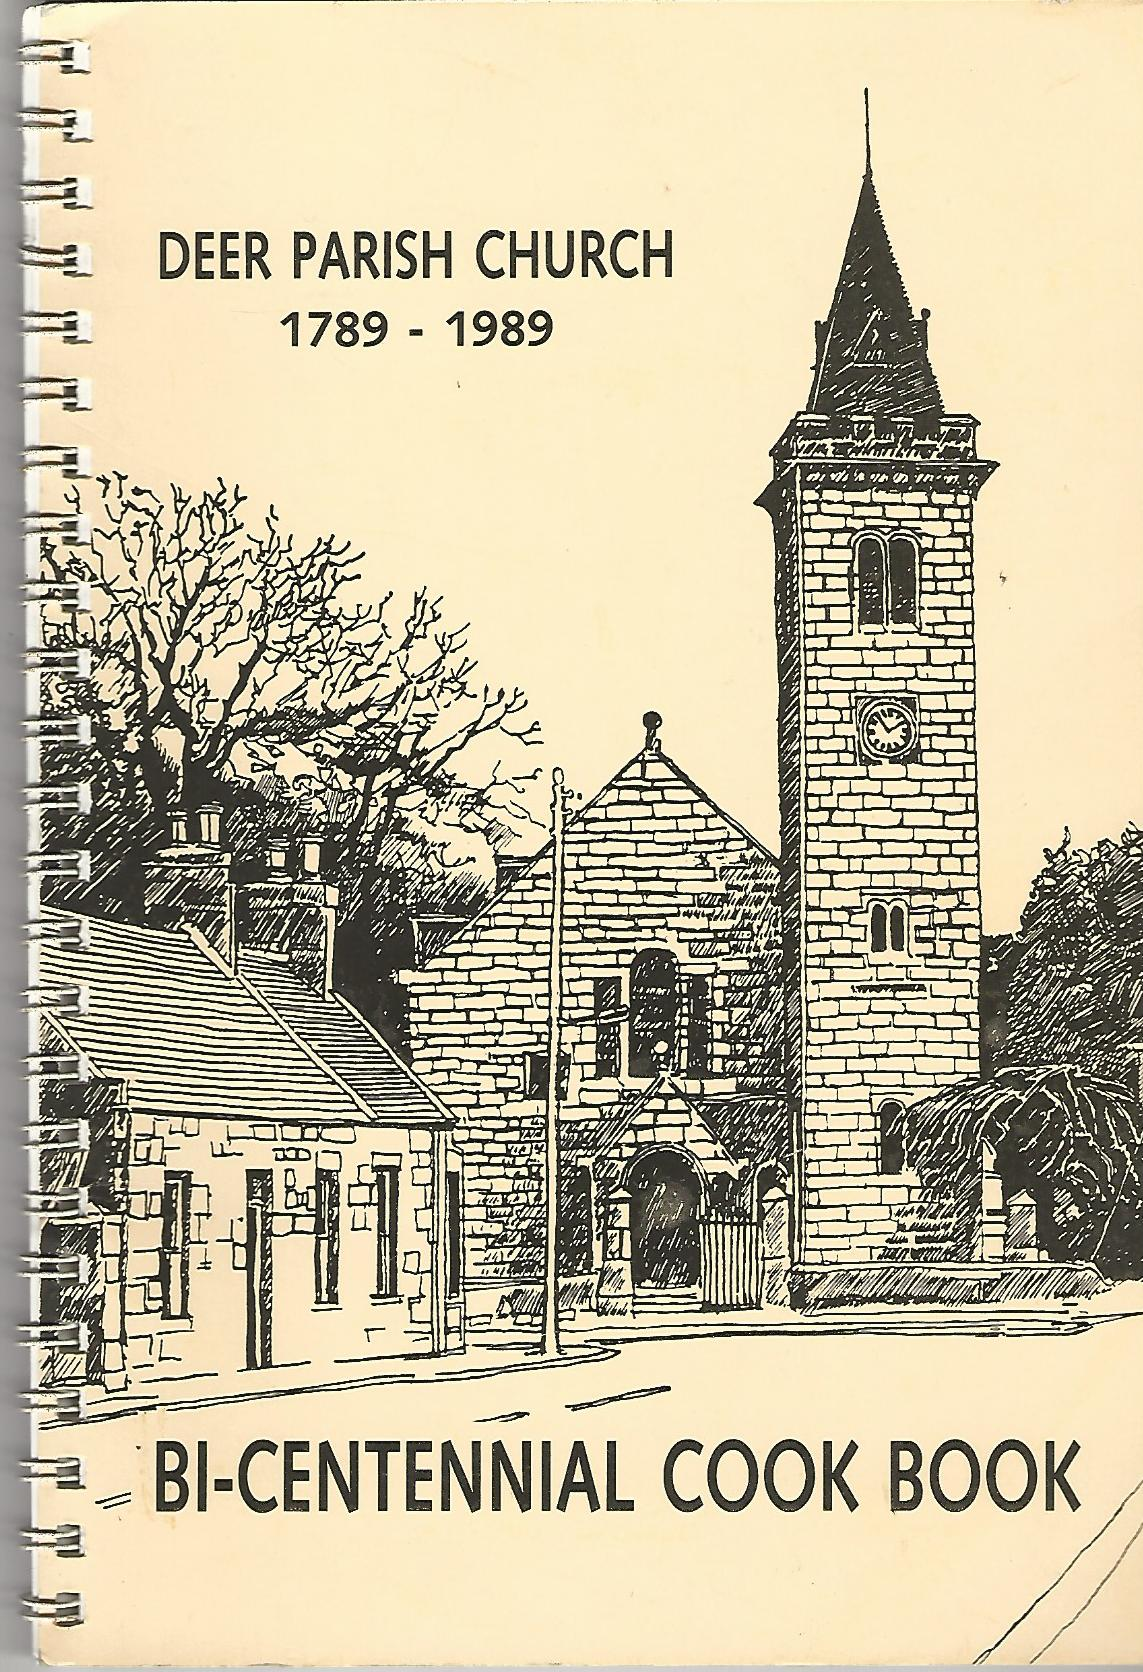 Image for Deer Parish Church 1789-1989 Bi-Centennial Cook Book.